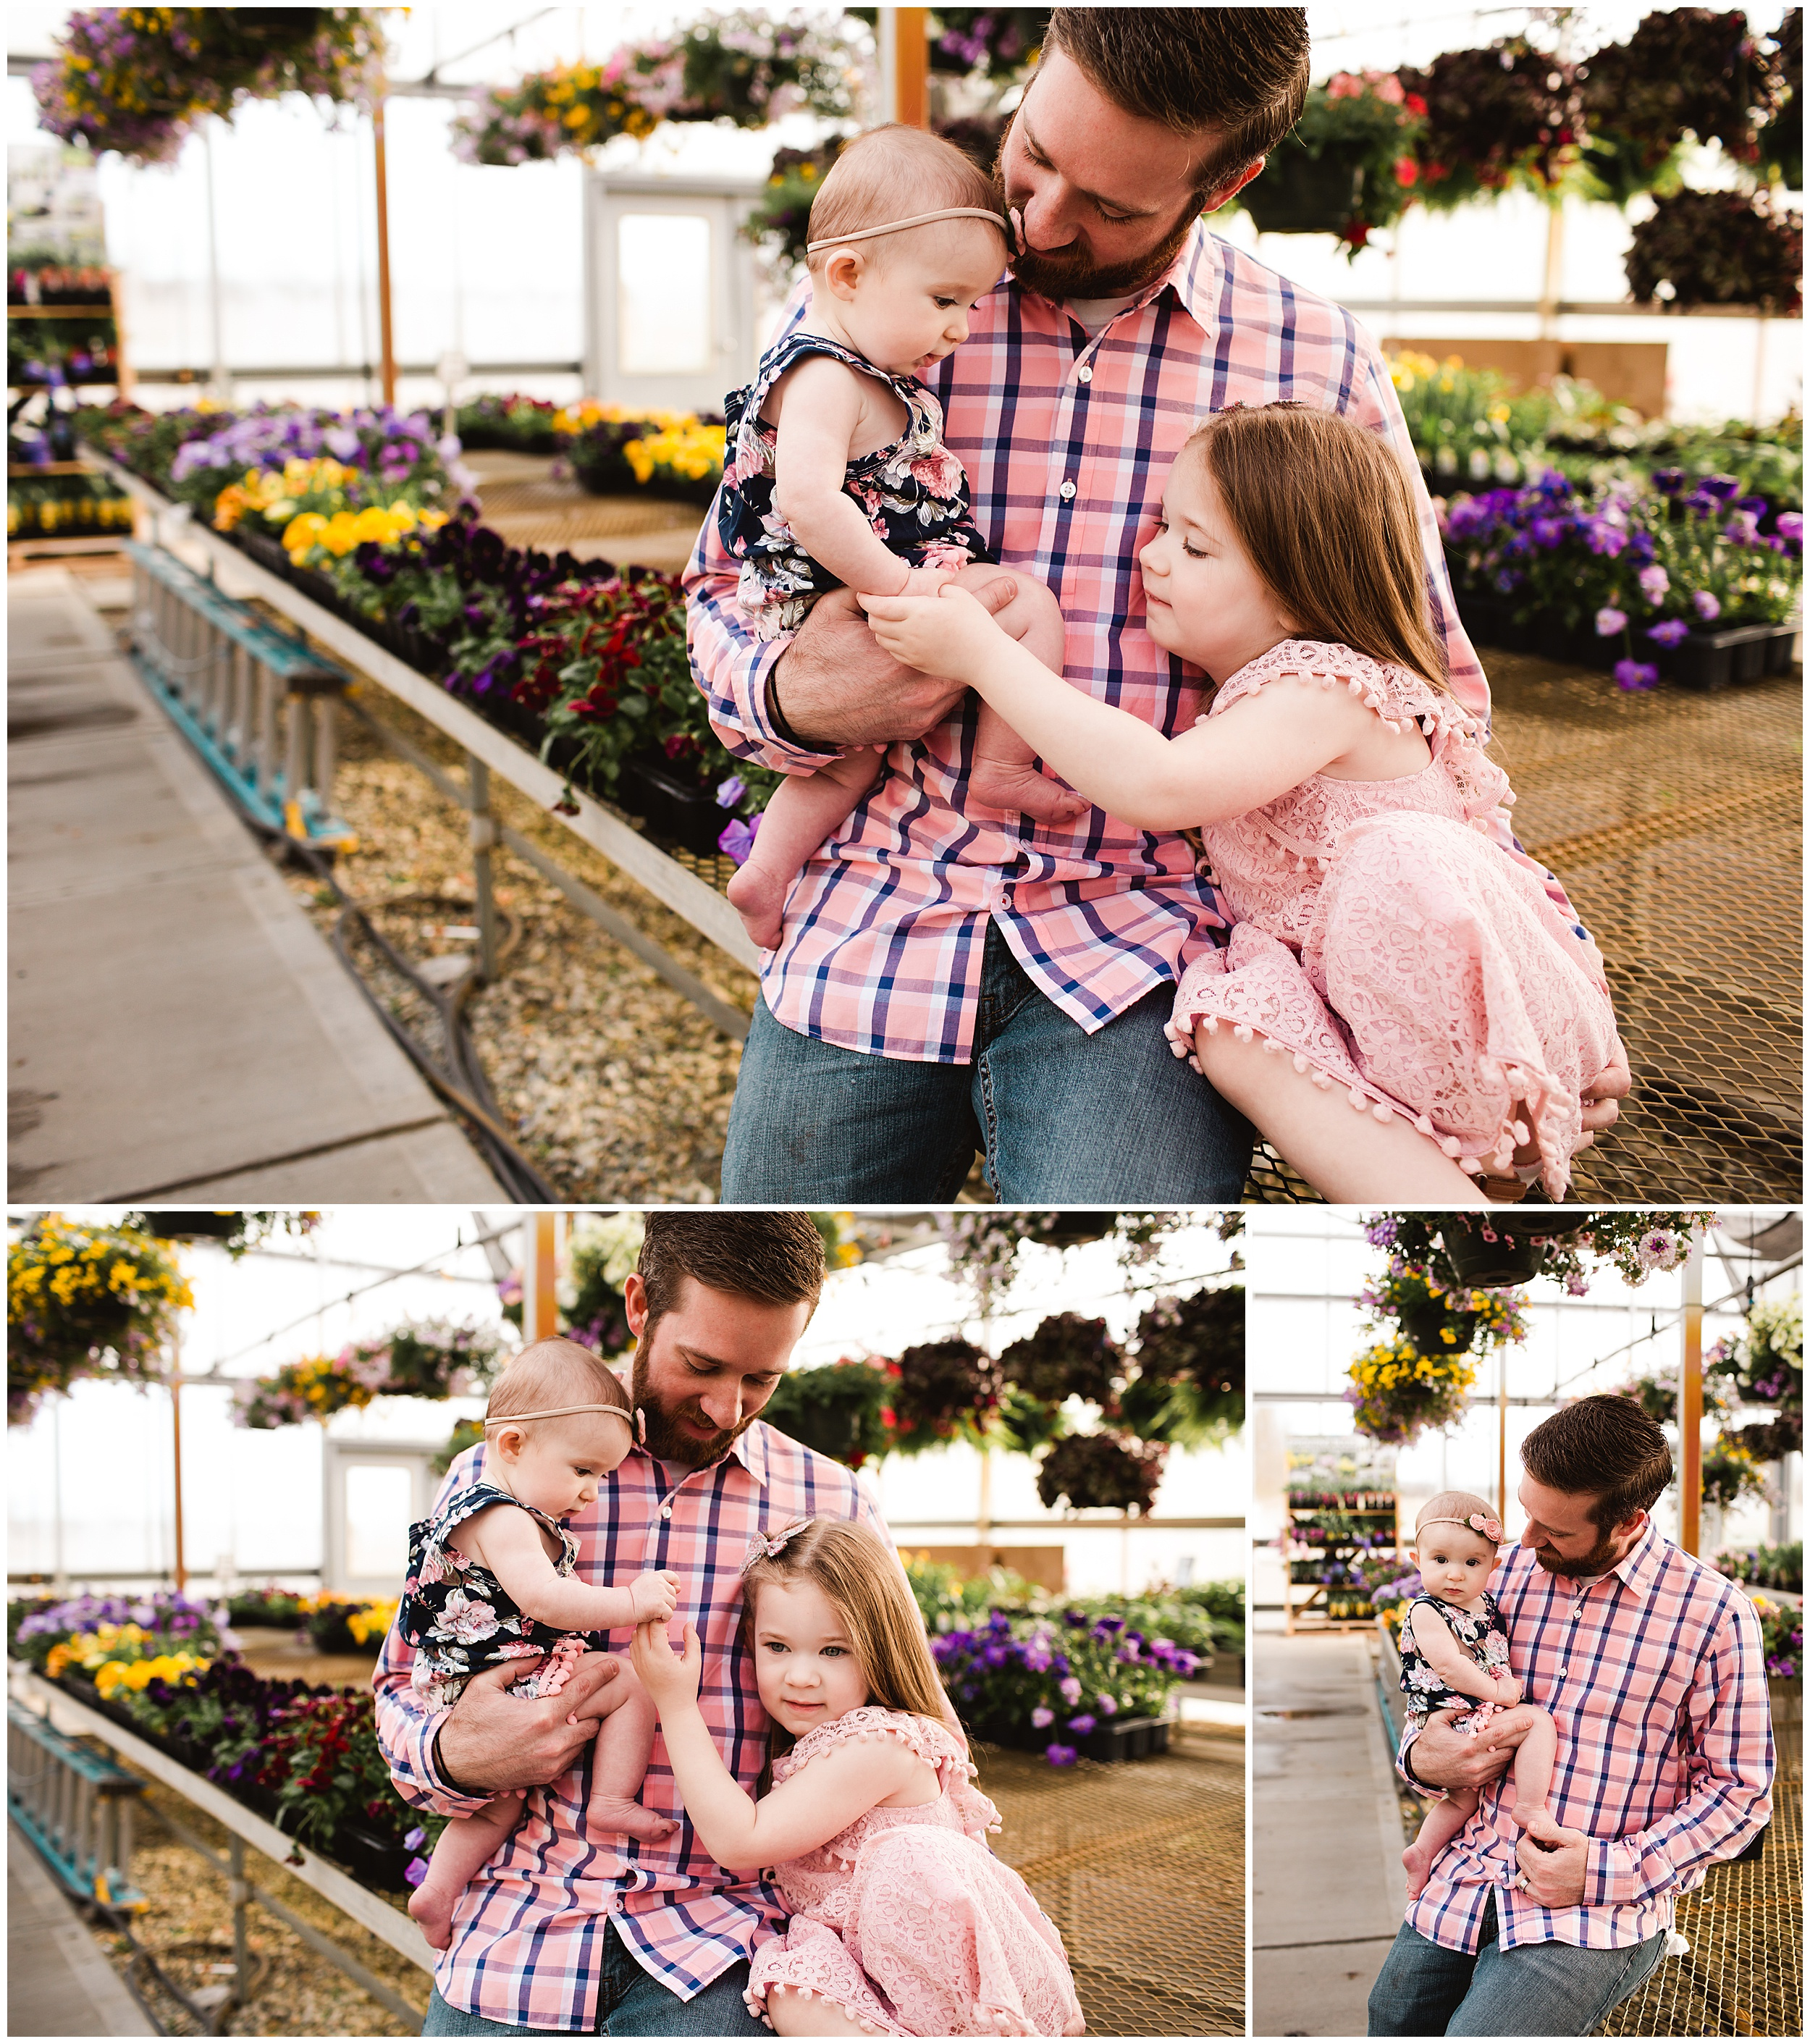 Indianapolis Family Photographer_Kelli White Photography_IG_0173.jpg